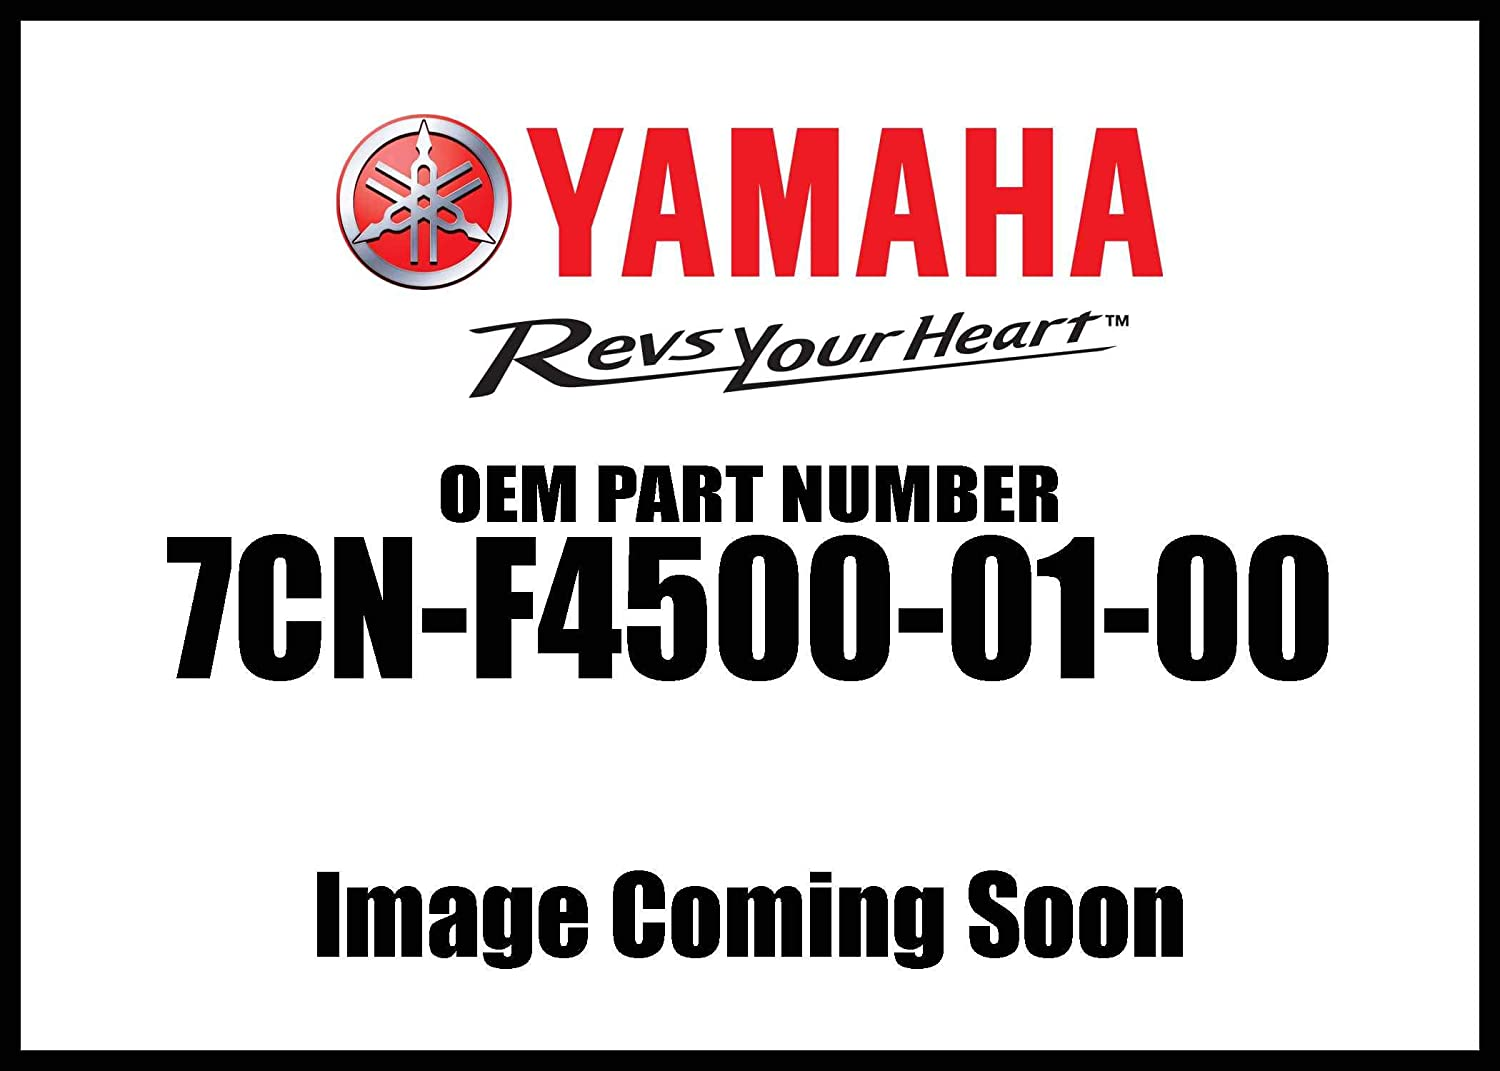 Yamaha Fuel Cock Assembly 1 7Cn-F4500-01-00 New Oem